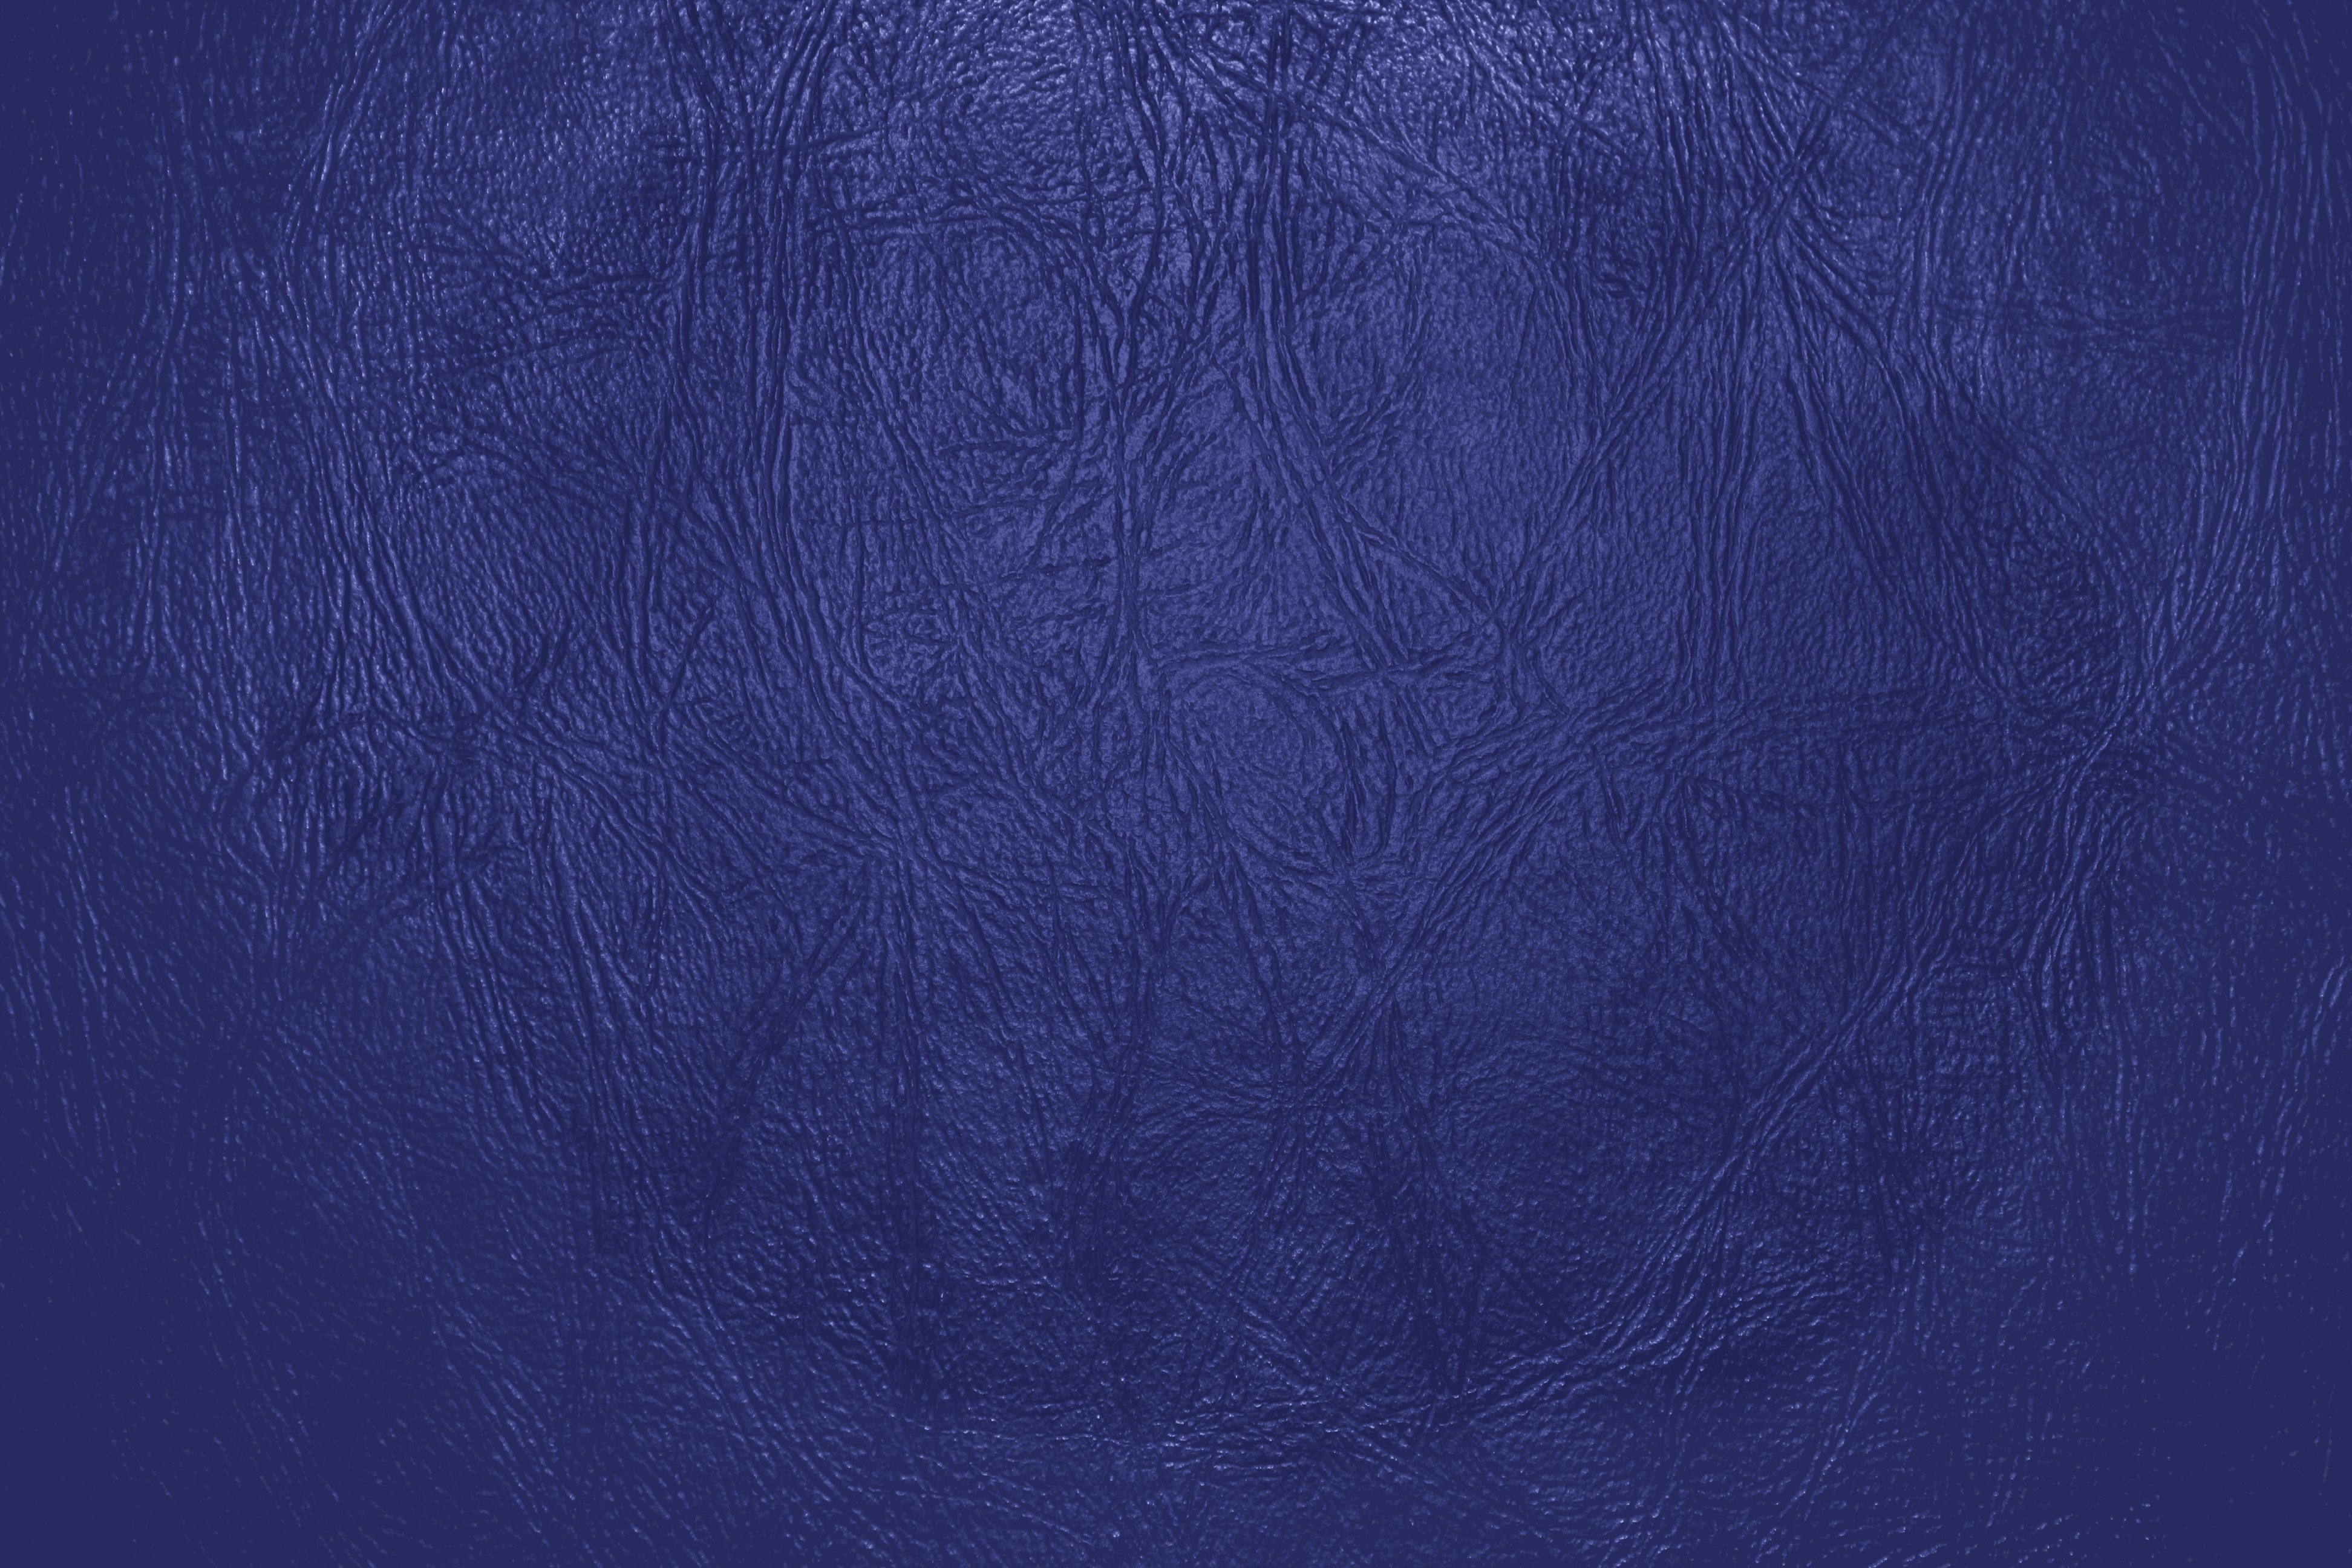 Leather Textures clipart blue leather Leather Up Leather Pictures Close